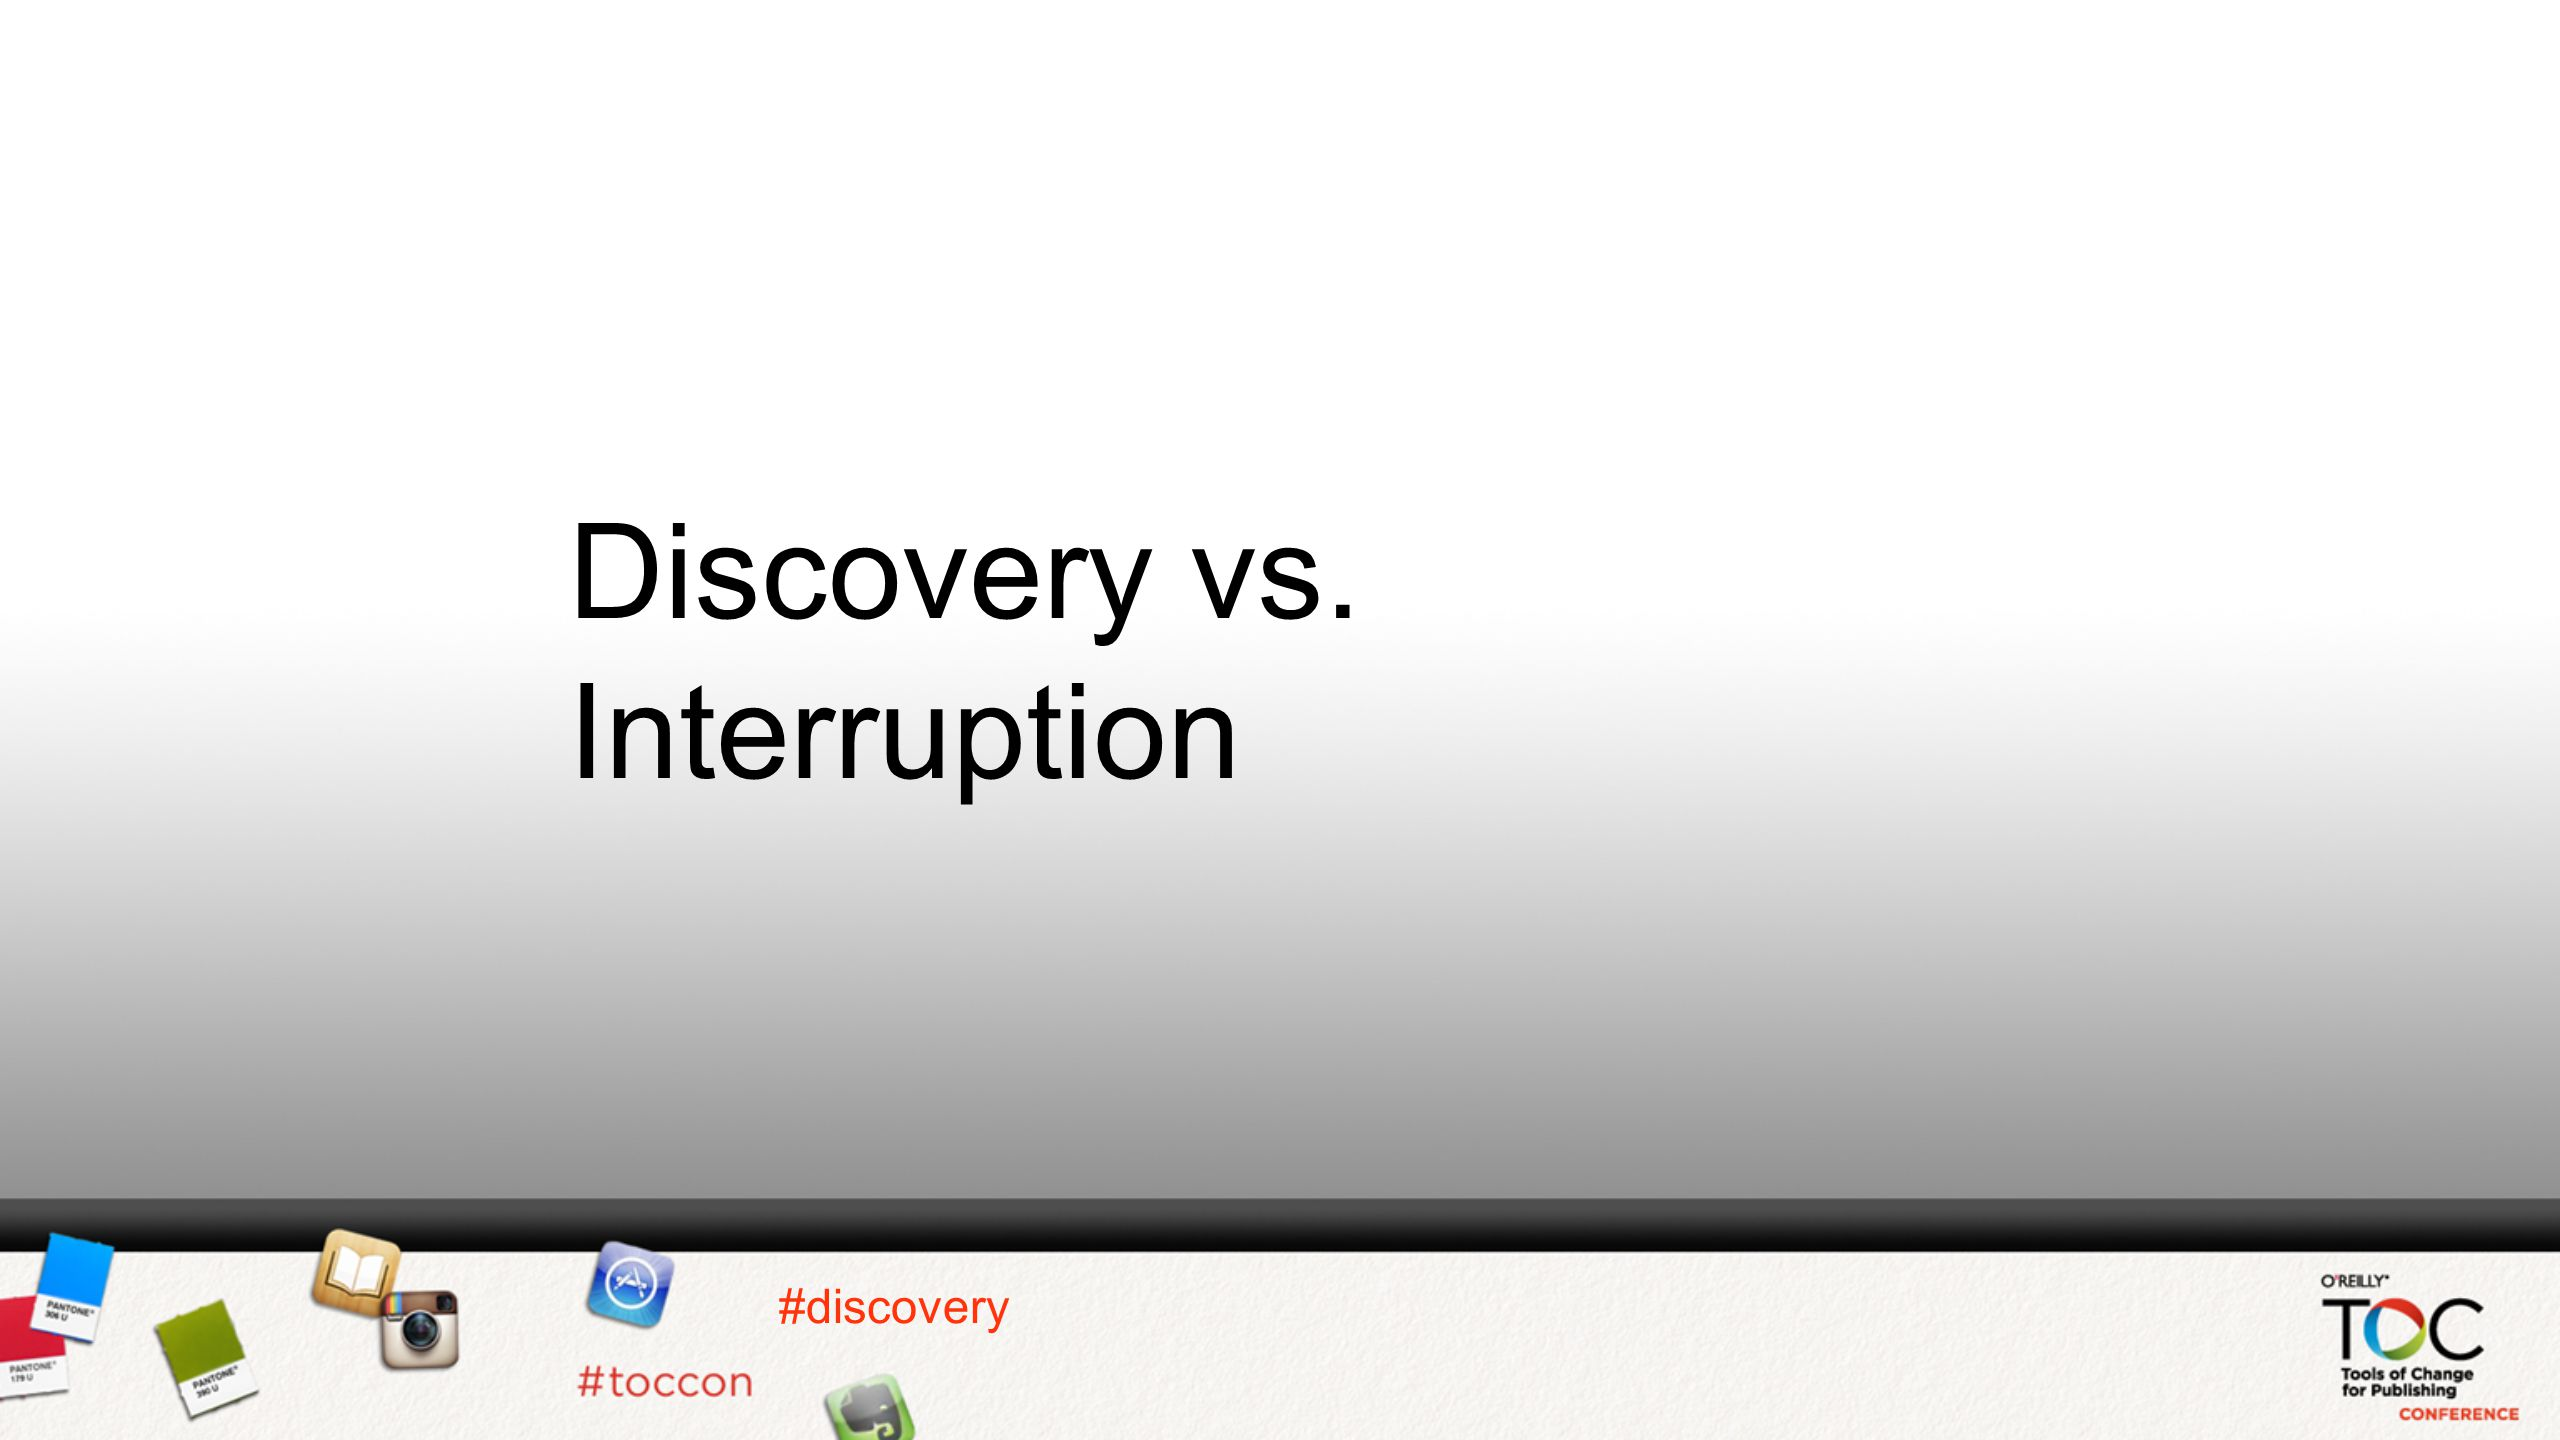 Discovery vs. Interruption